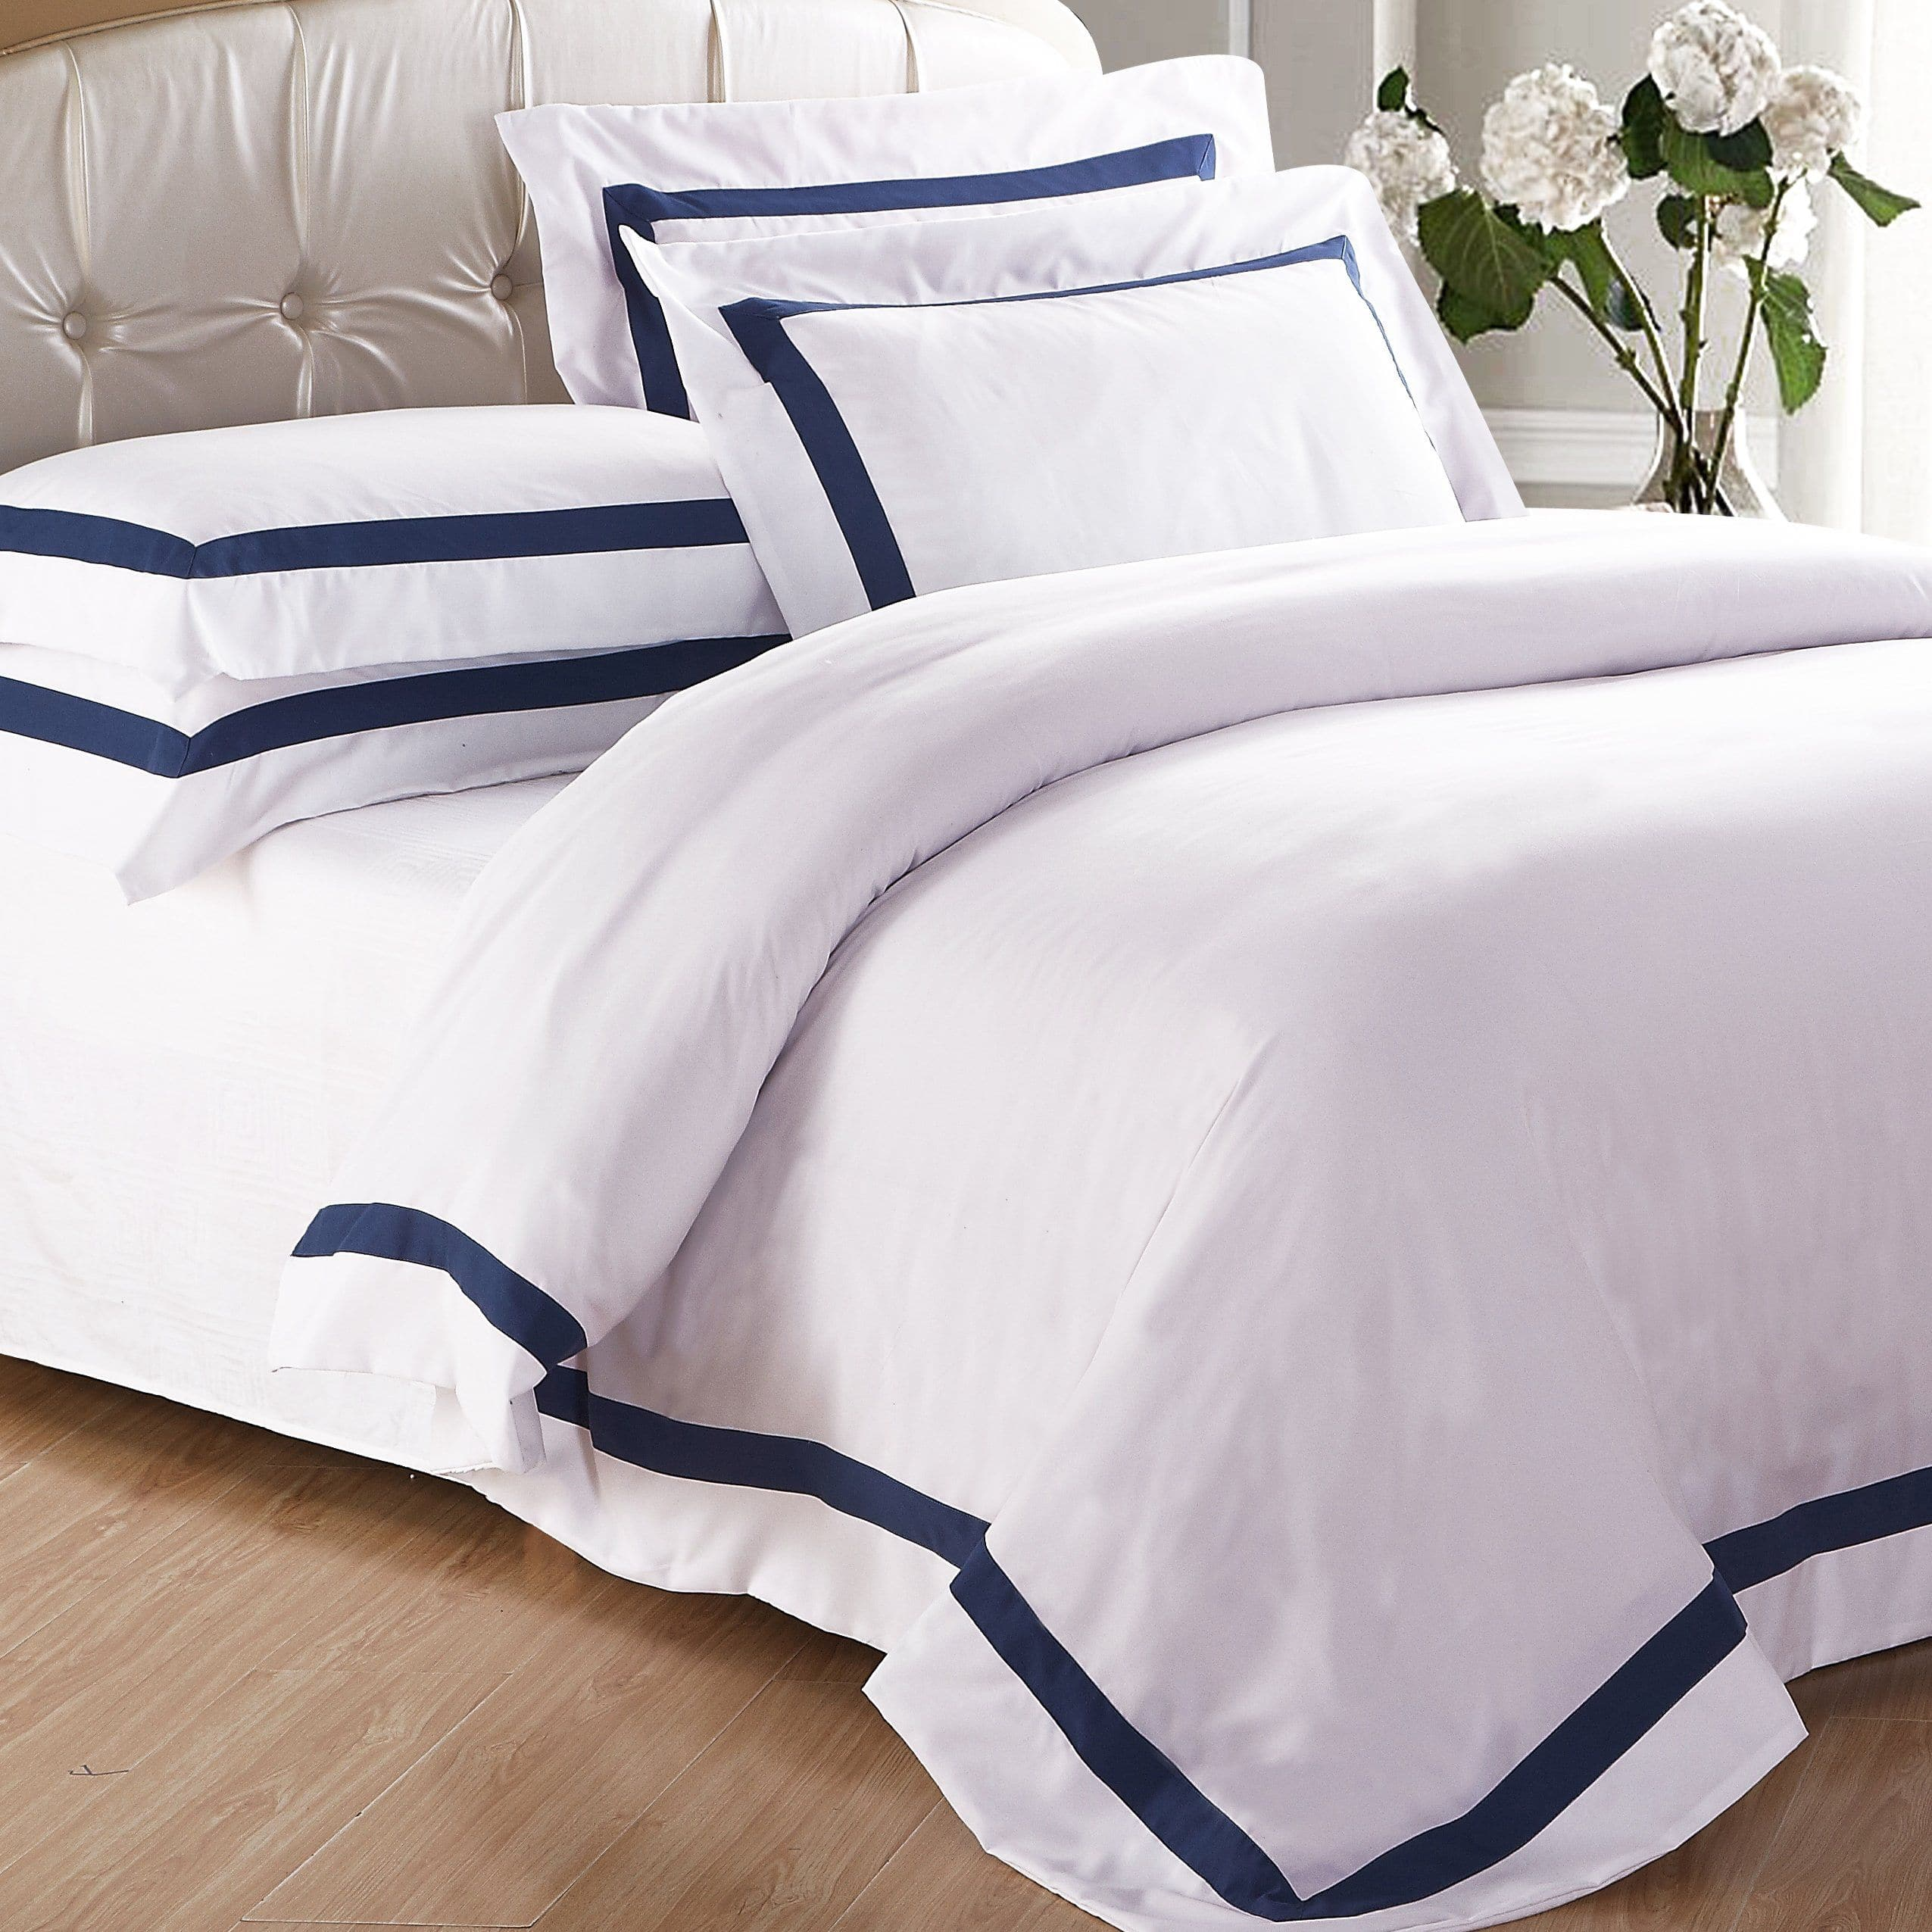 White Quilt Cover With Blue Trim Ivory Amp Deene Ivory